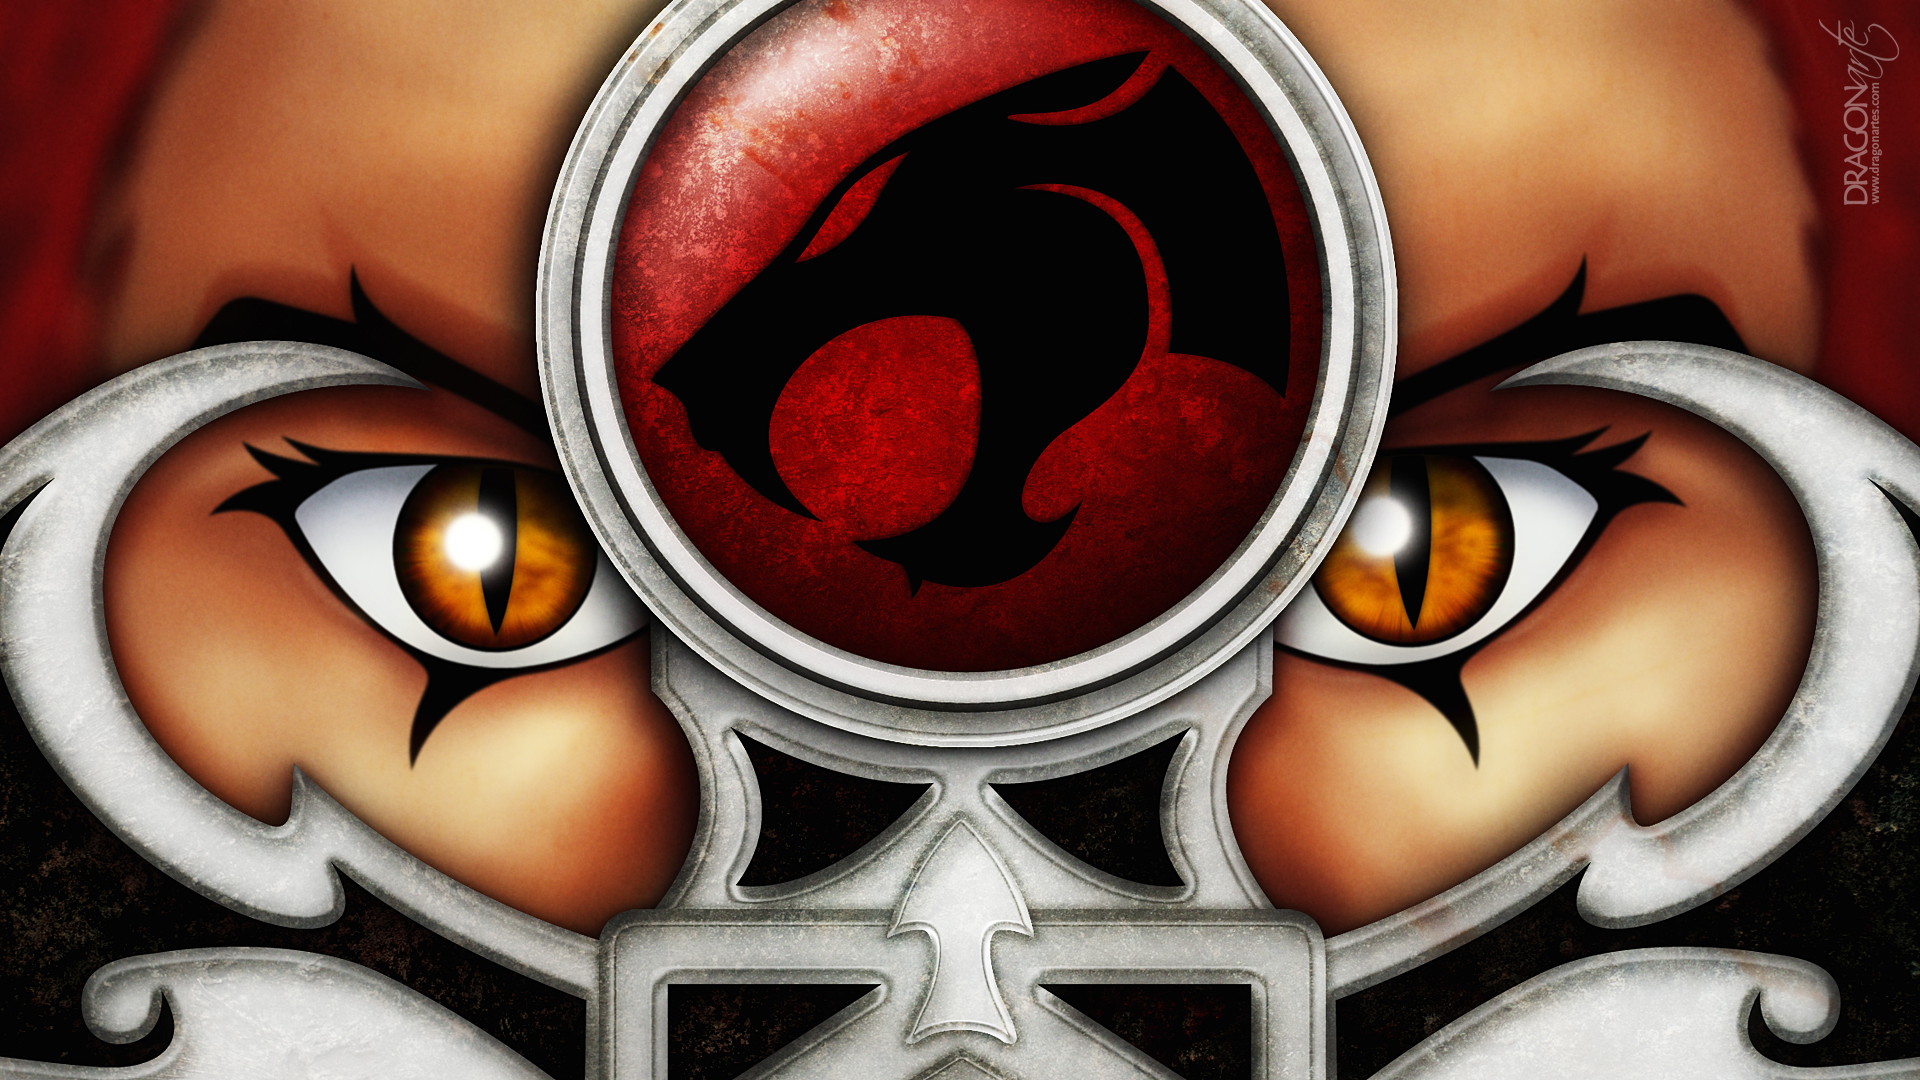 Thundercats Wallpapers Pictures Images 1920x1080